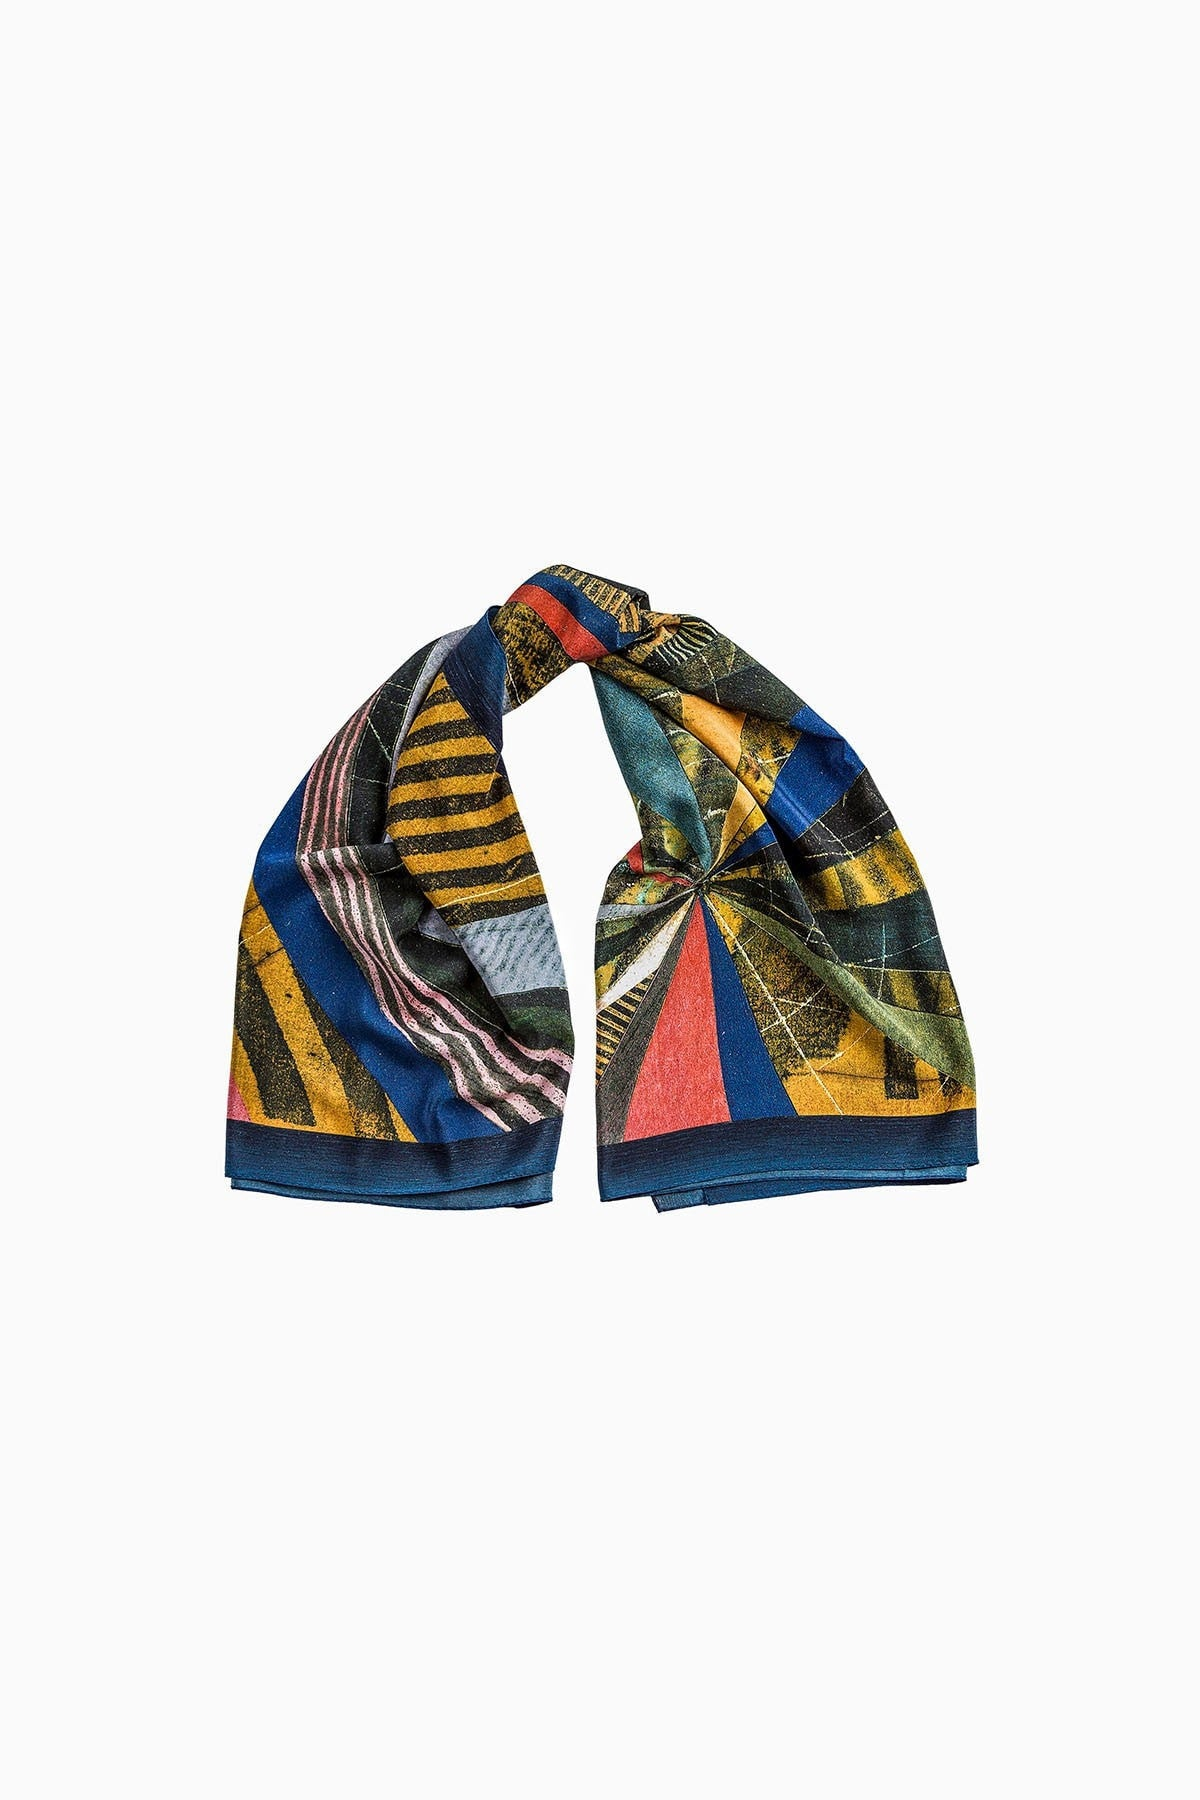 Hue Silk Scarf - Multicolor Abstract Print Scarves - artTECA